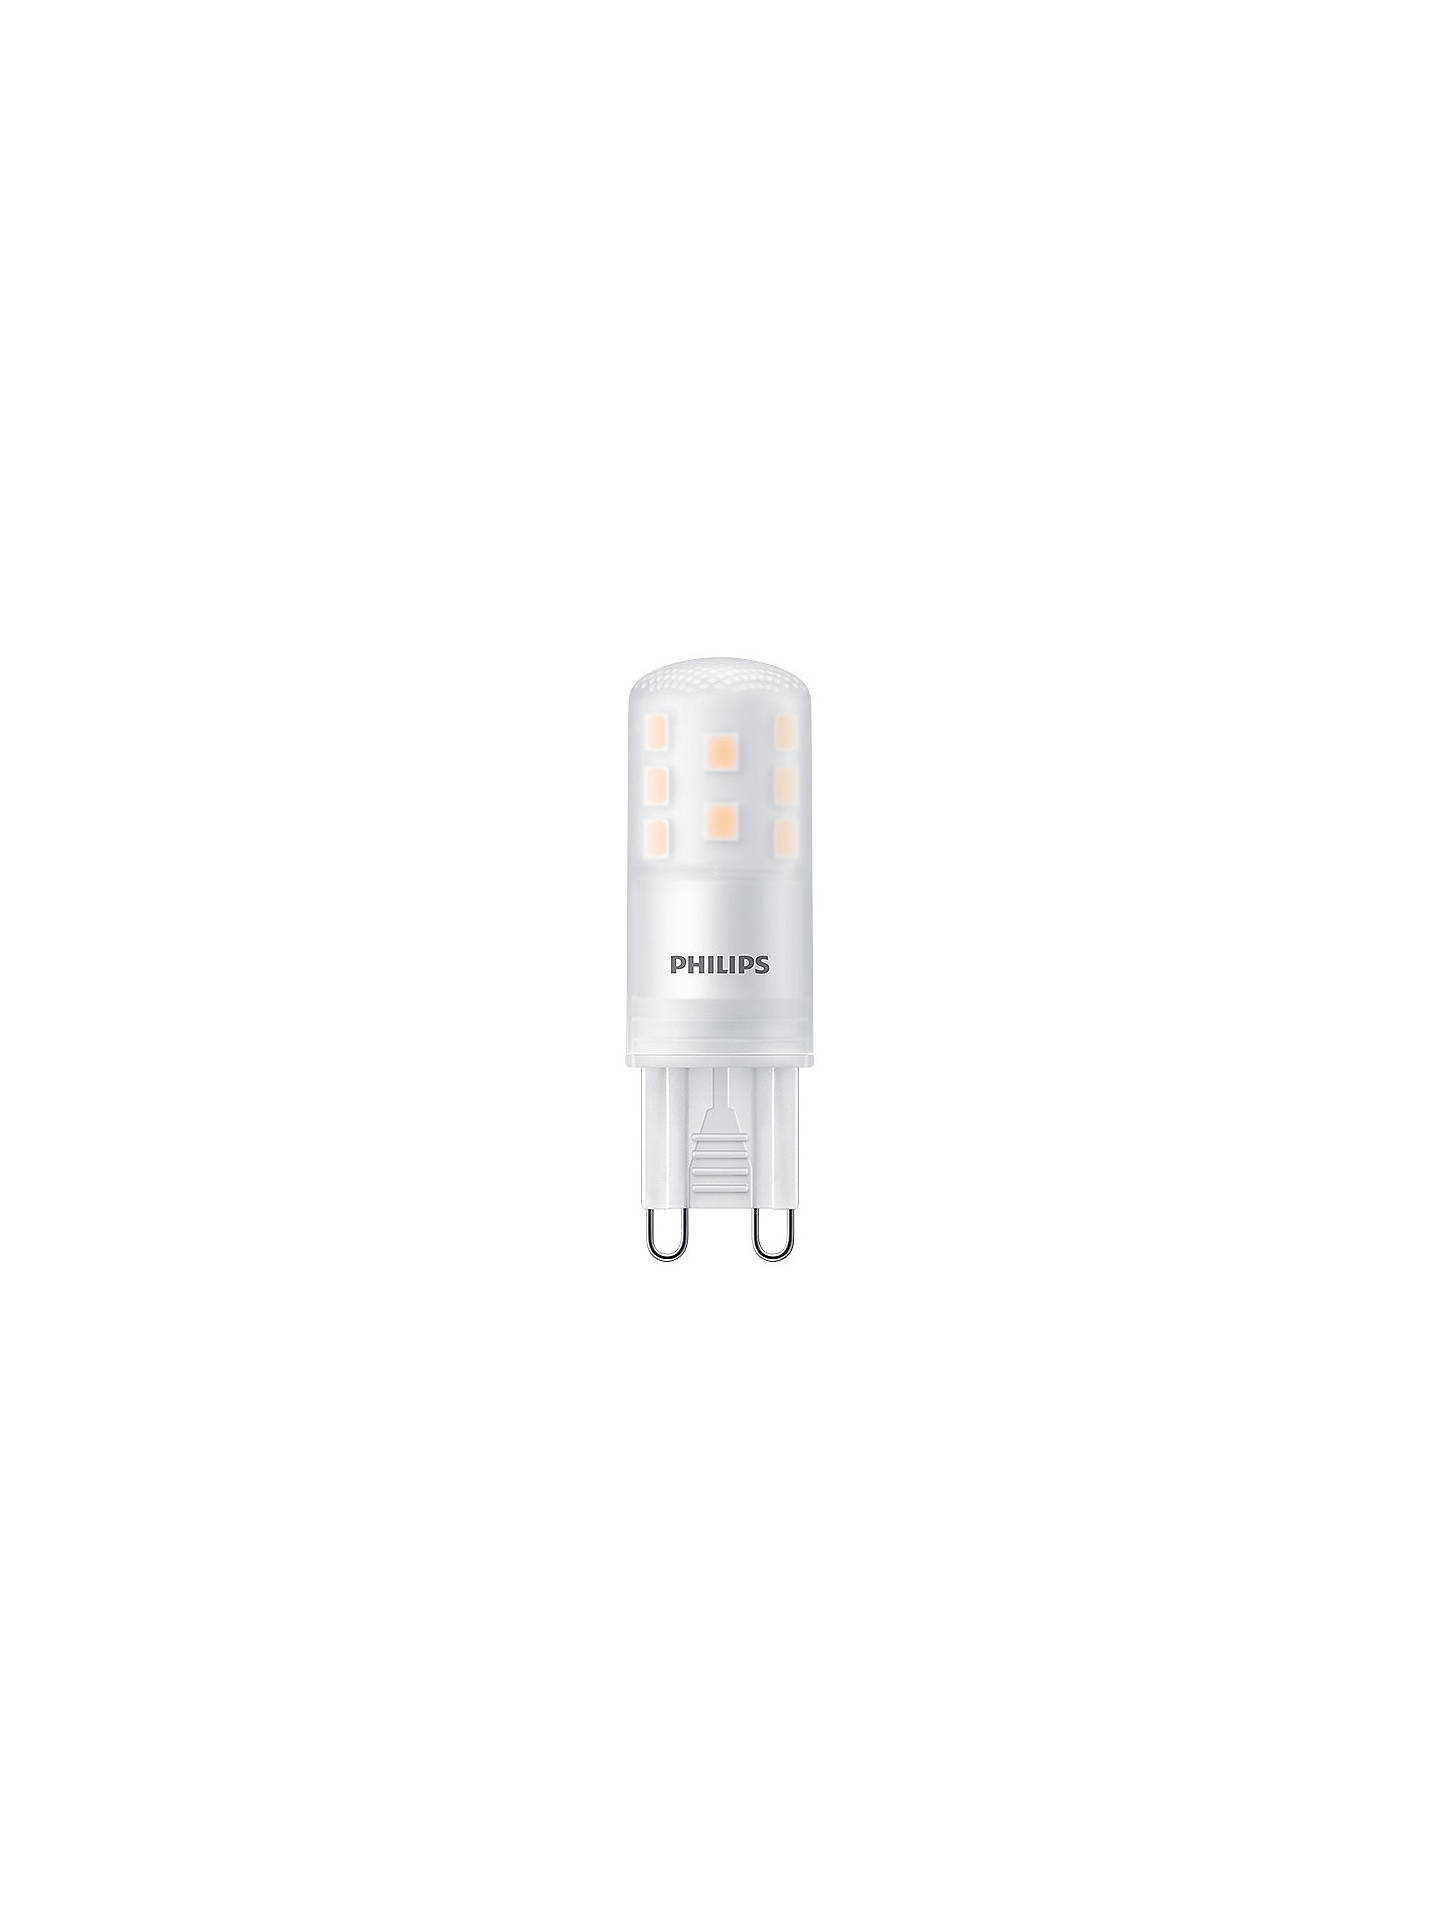 philips 2 5w g9 led dimmable capsule bulb clear at john. Black Bedroom Furniture Sets. Home Design Ideas